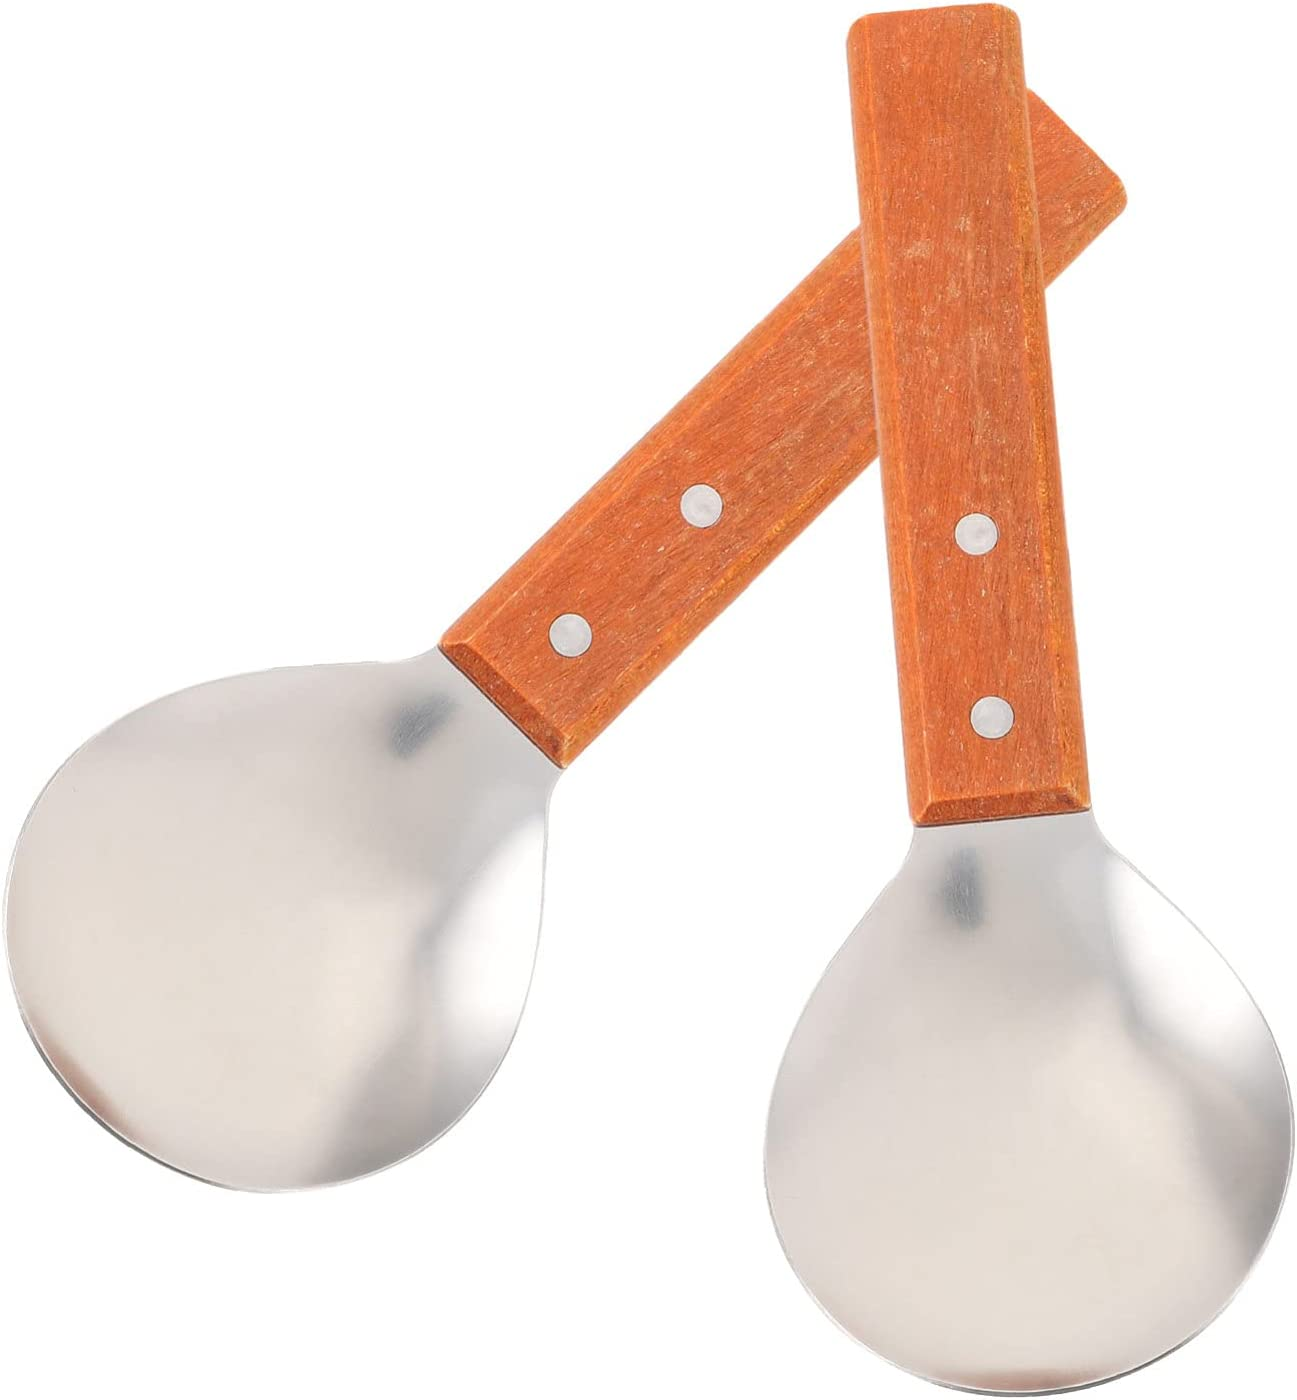 Luxshiny 2pcs Direct store Rice Paddle Spoons with Handle Stainless Long-awaited St Wooden